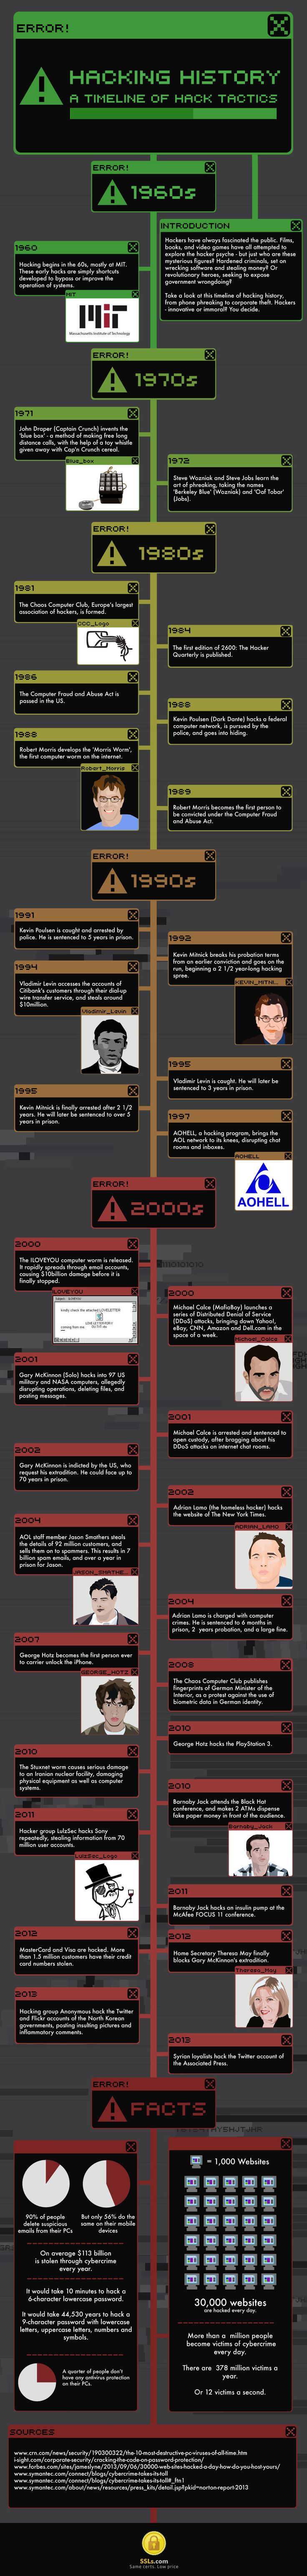 Hacking History – A Timeline Of Hack Tactics [Infographic]